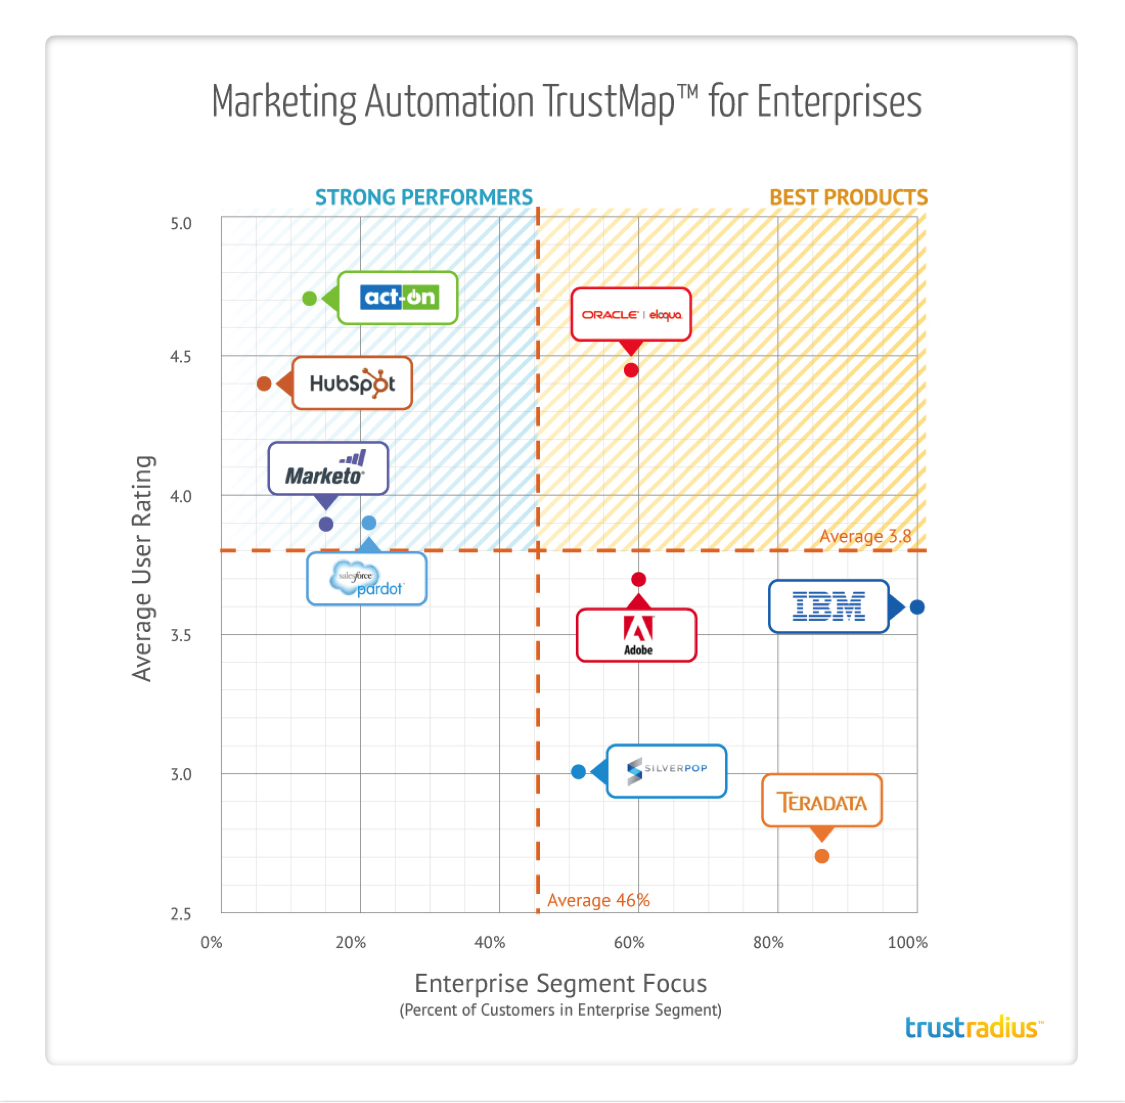 Marketing Automation TrustMap for Enterprises